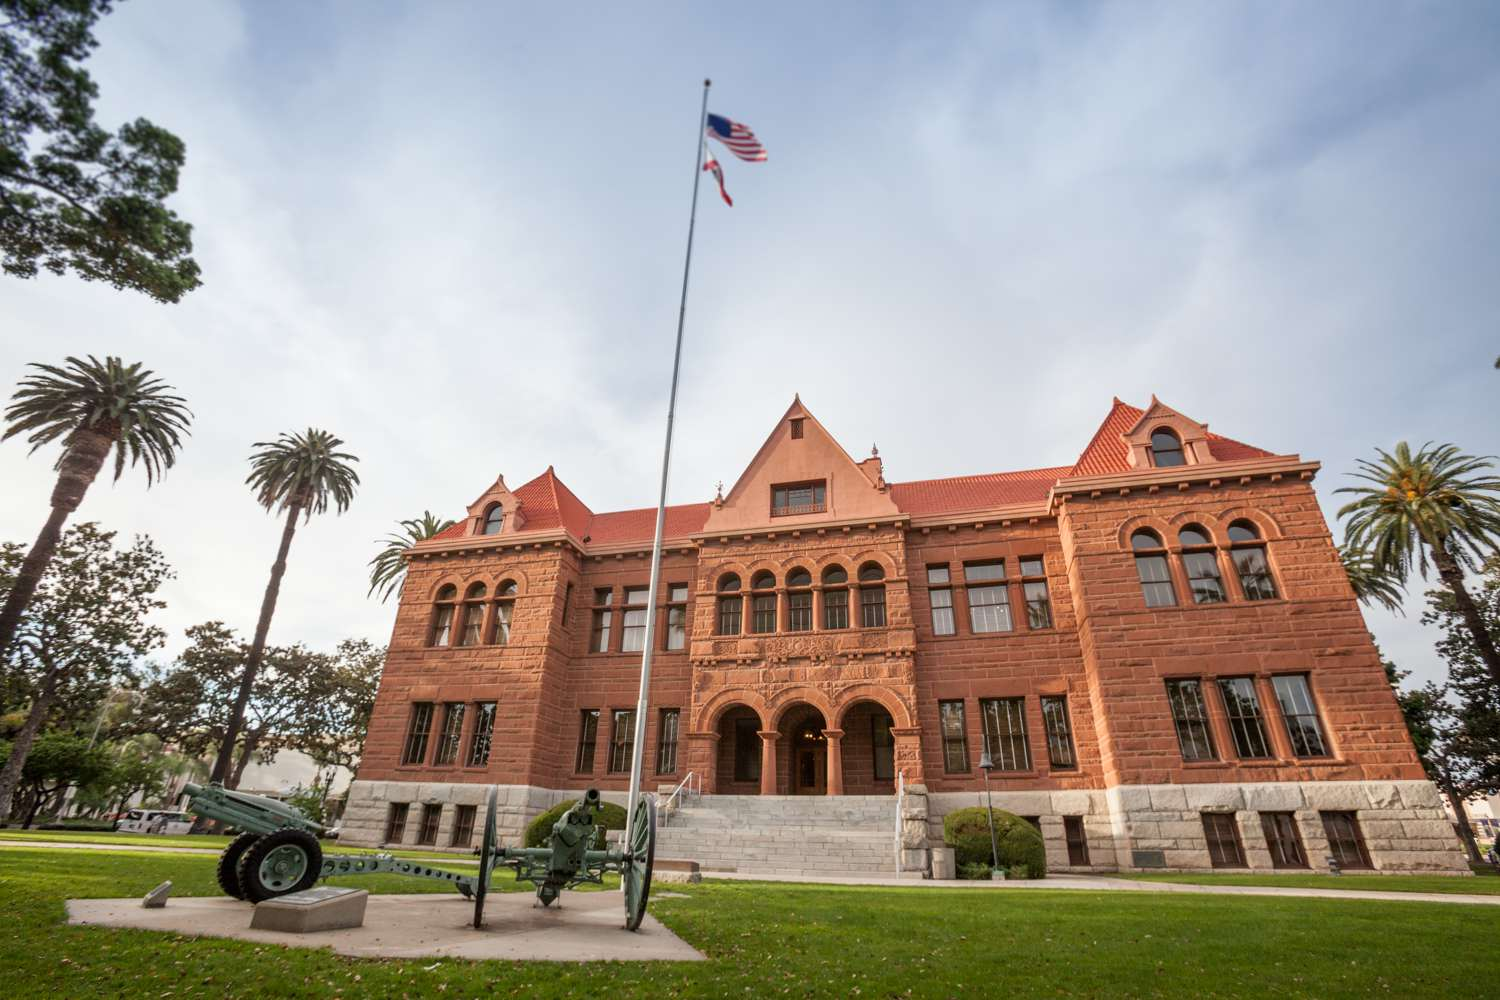 Old Courthouse Museum en Santa Ana, CA